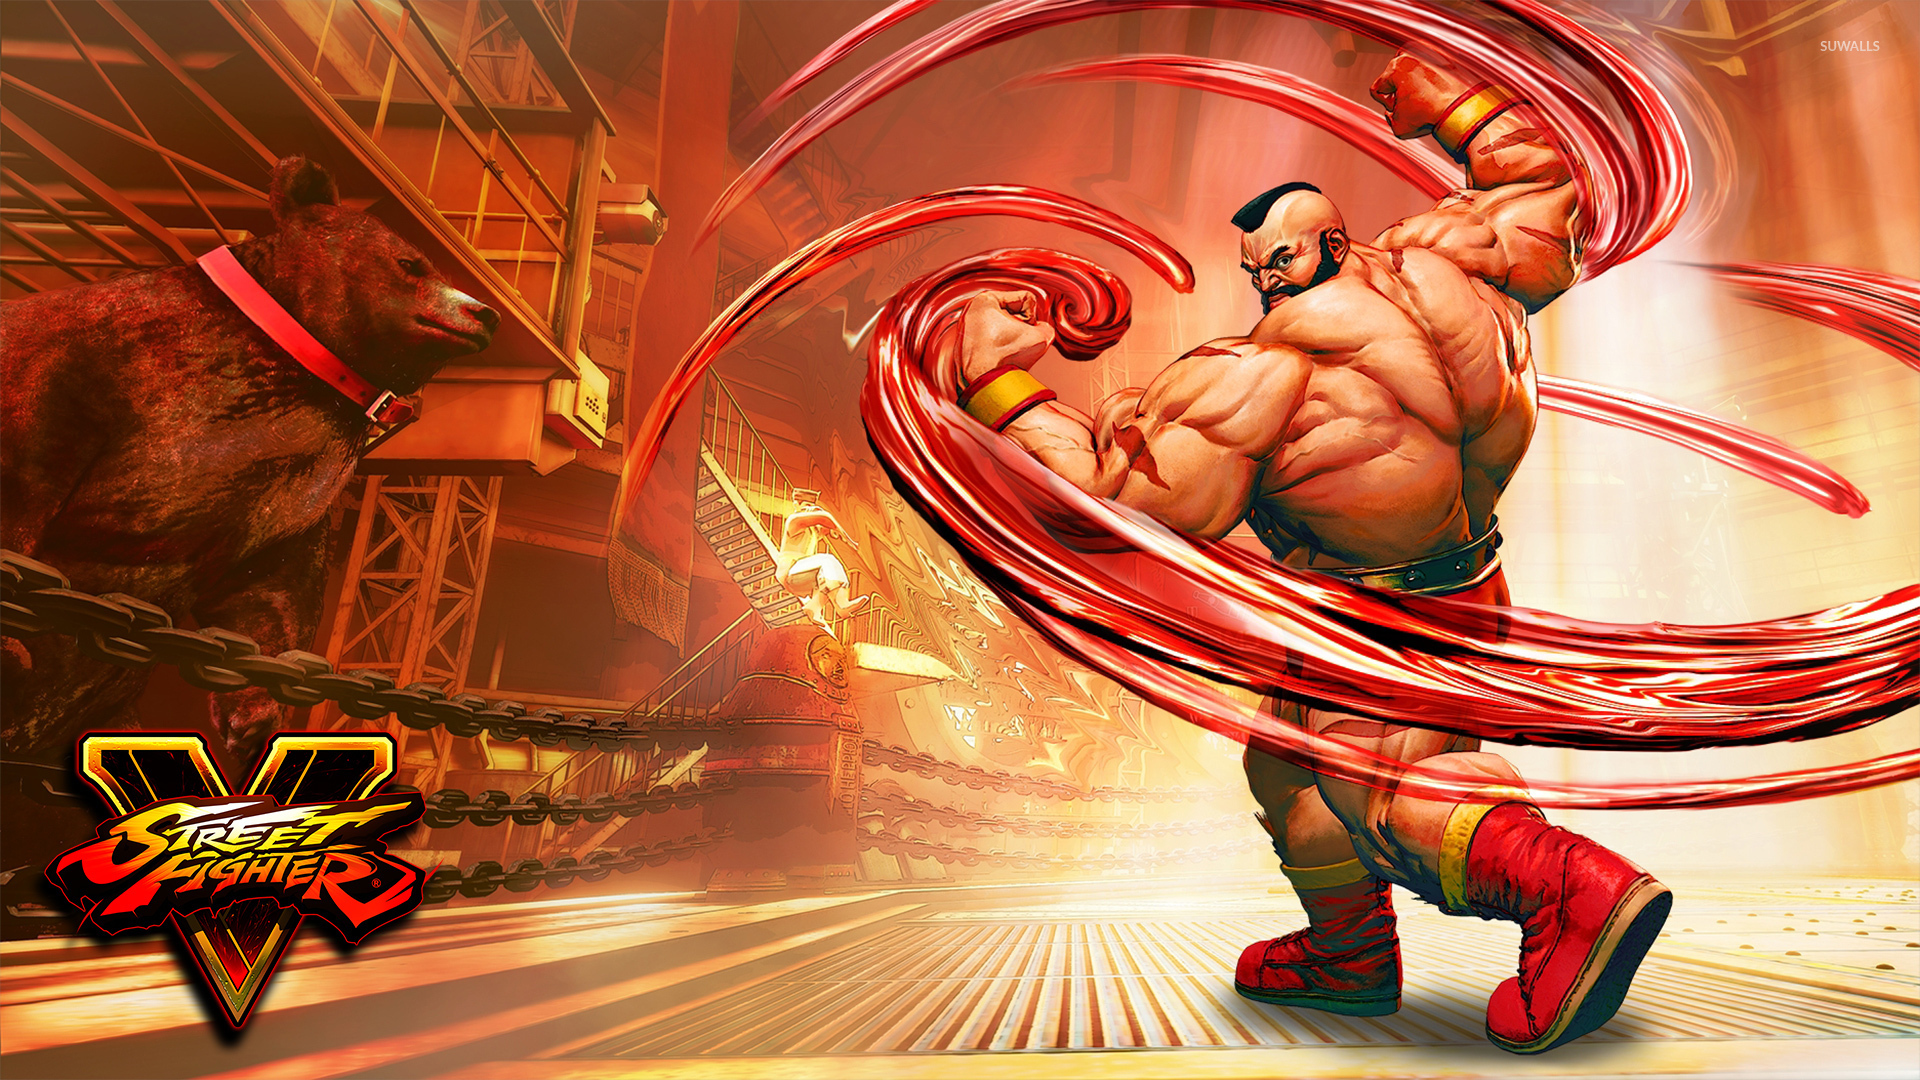 zangief in street fighter v wallpaper - game wallpapers - #53797